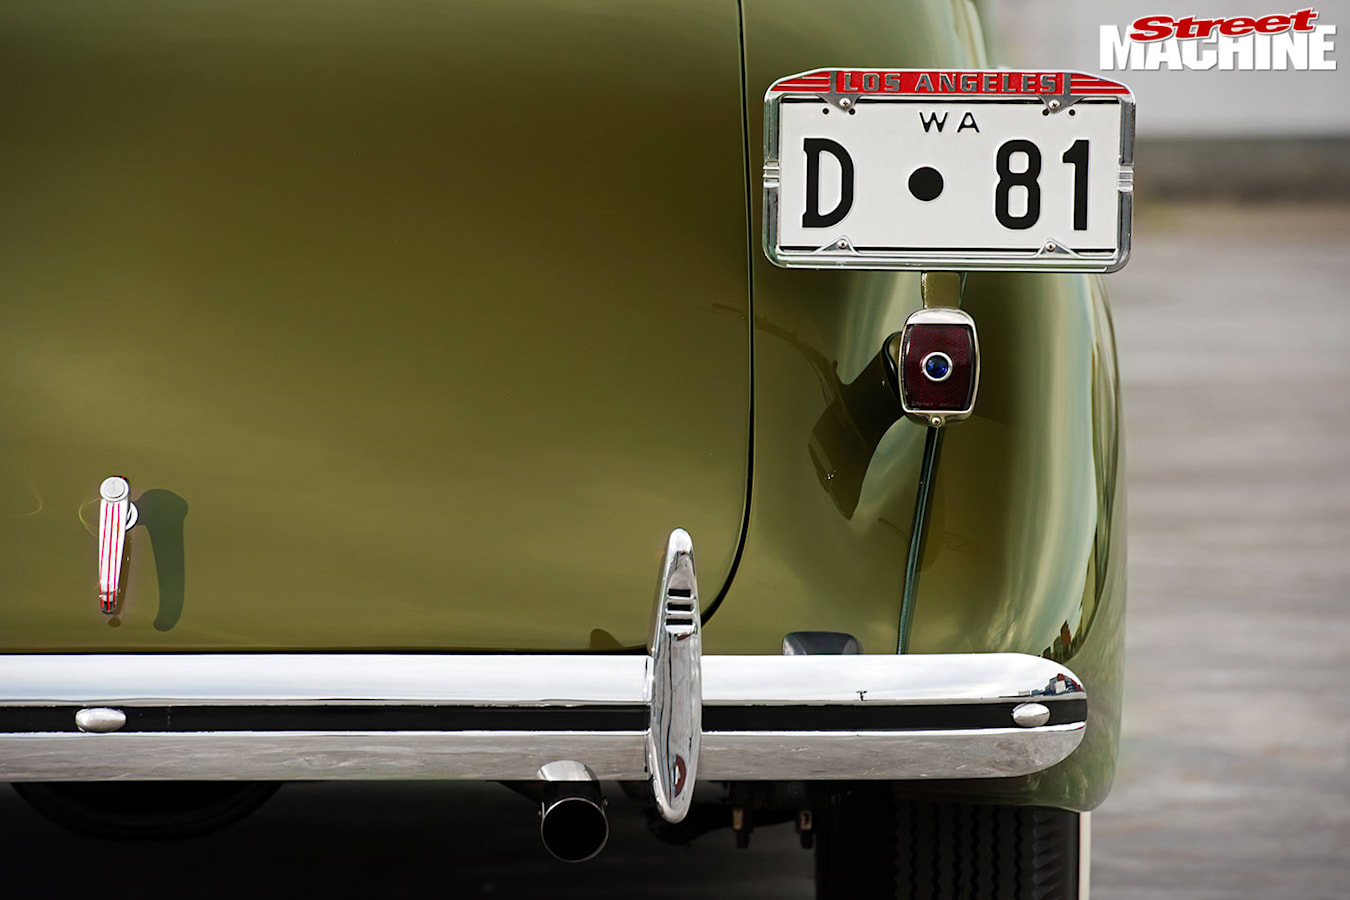 Chevrolet coupe tail light